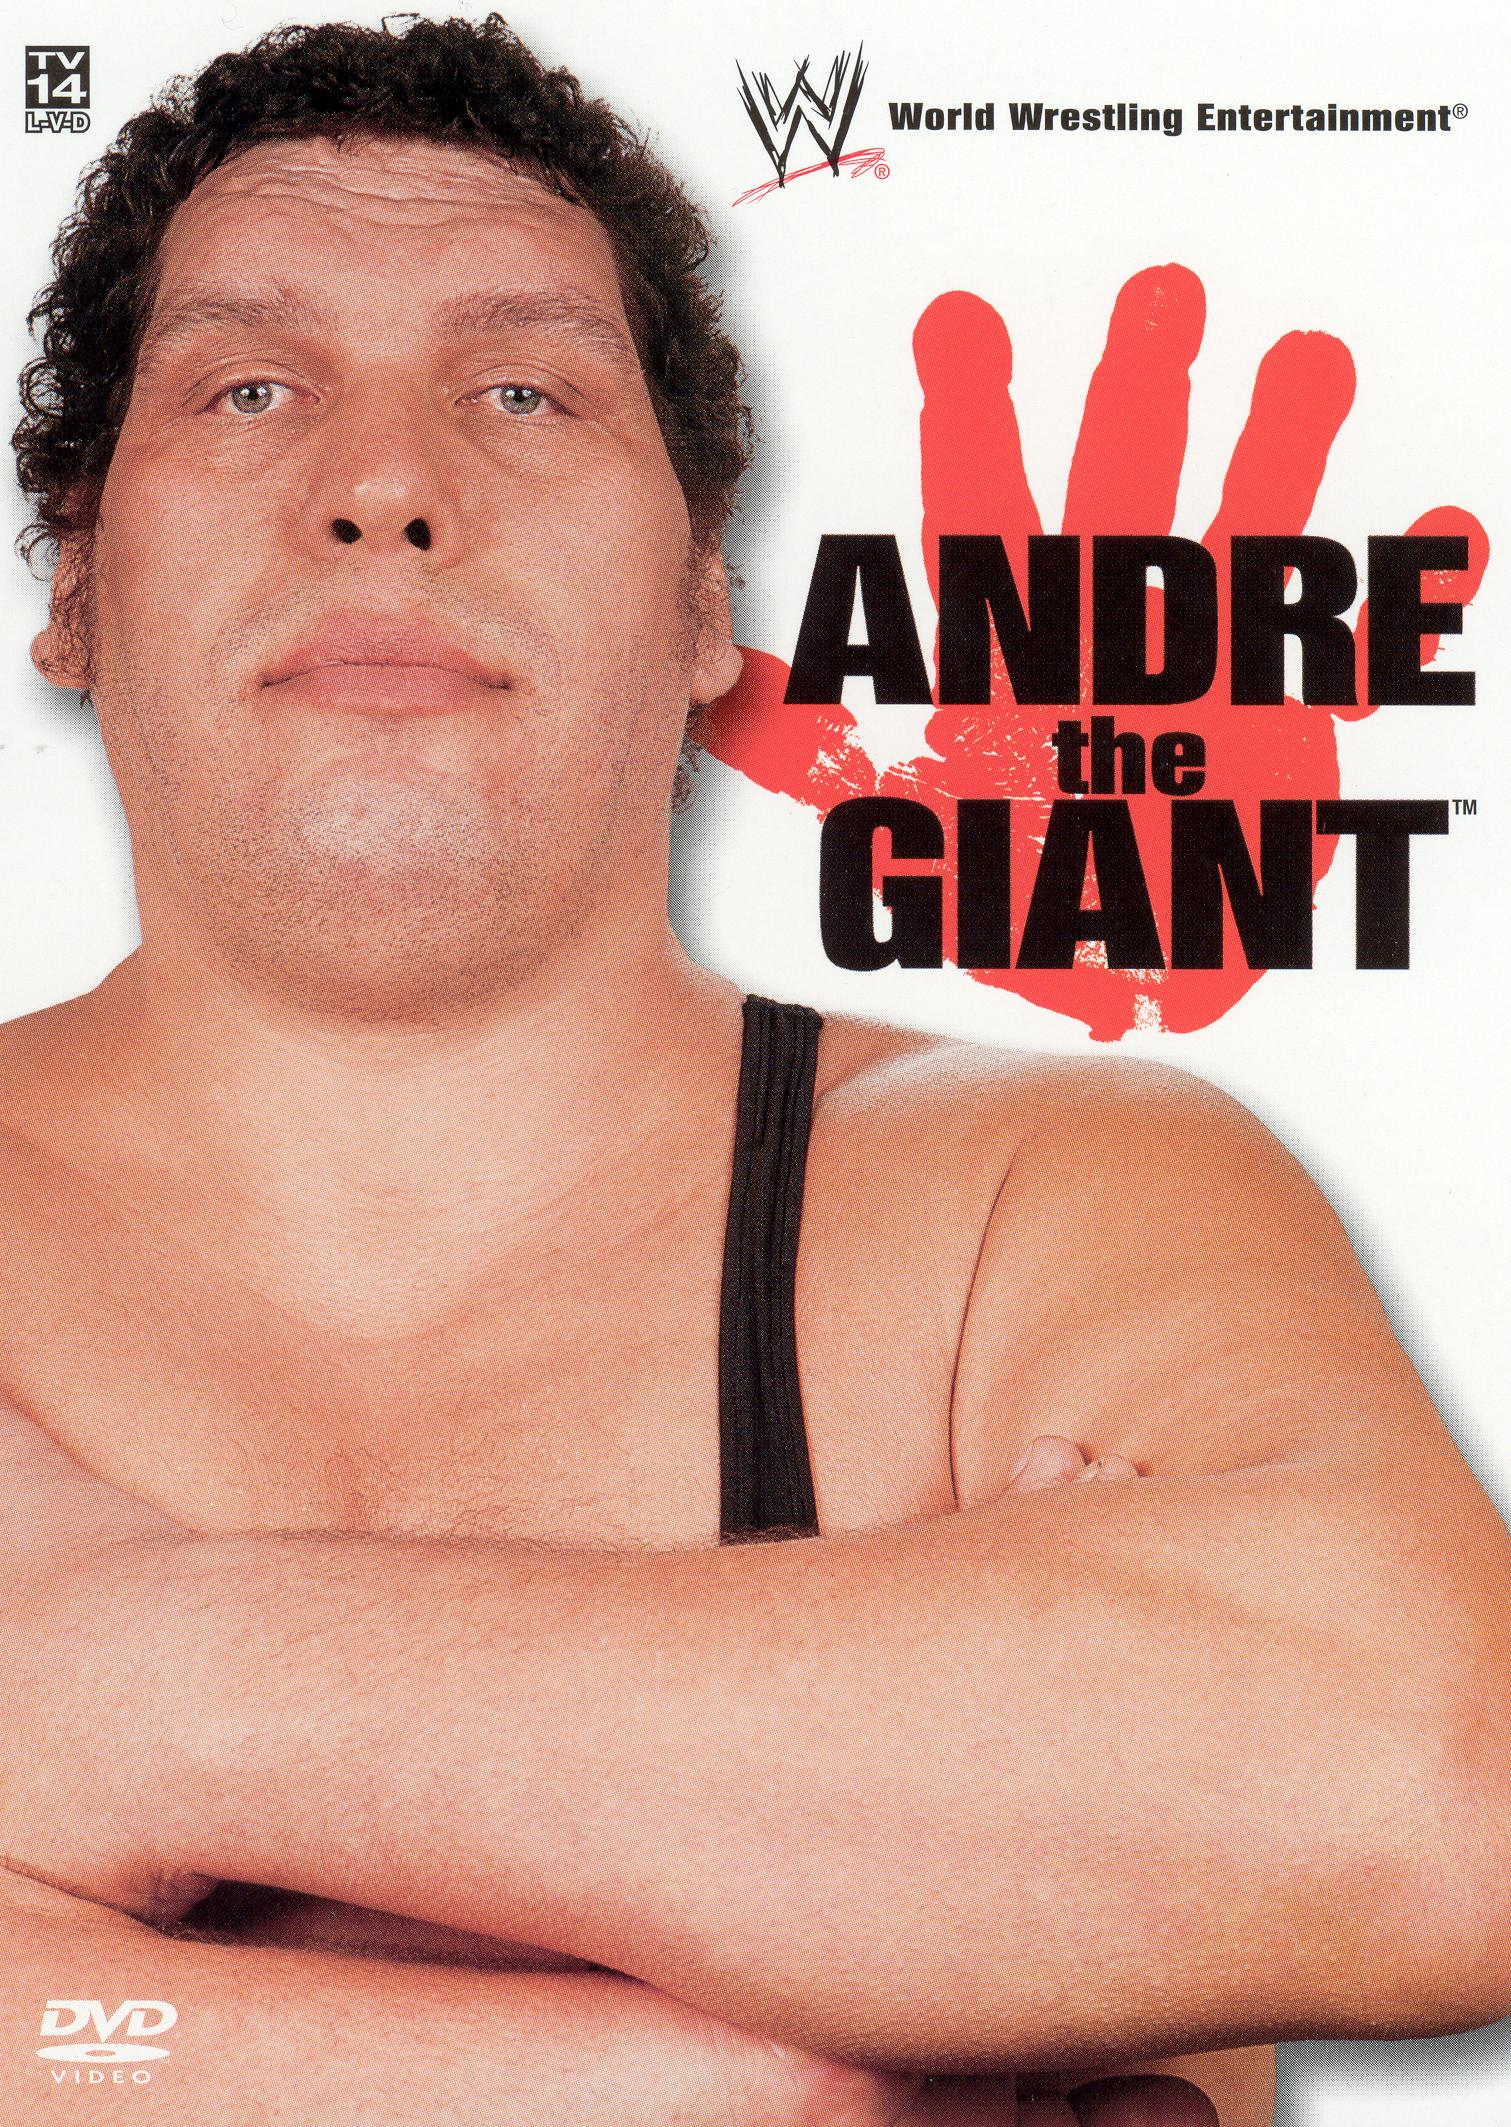 WWE: Andre the Giant (2005)